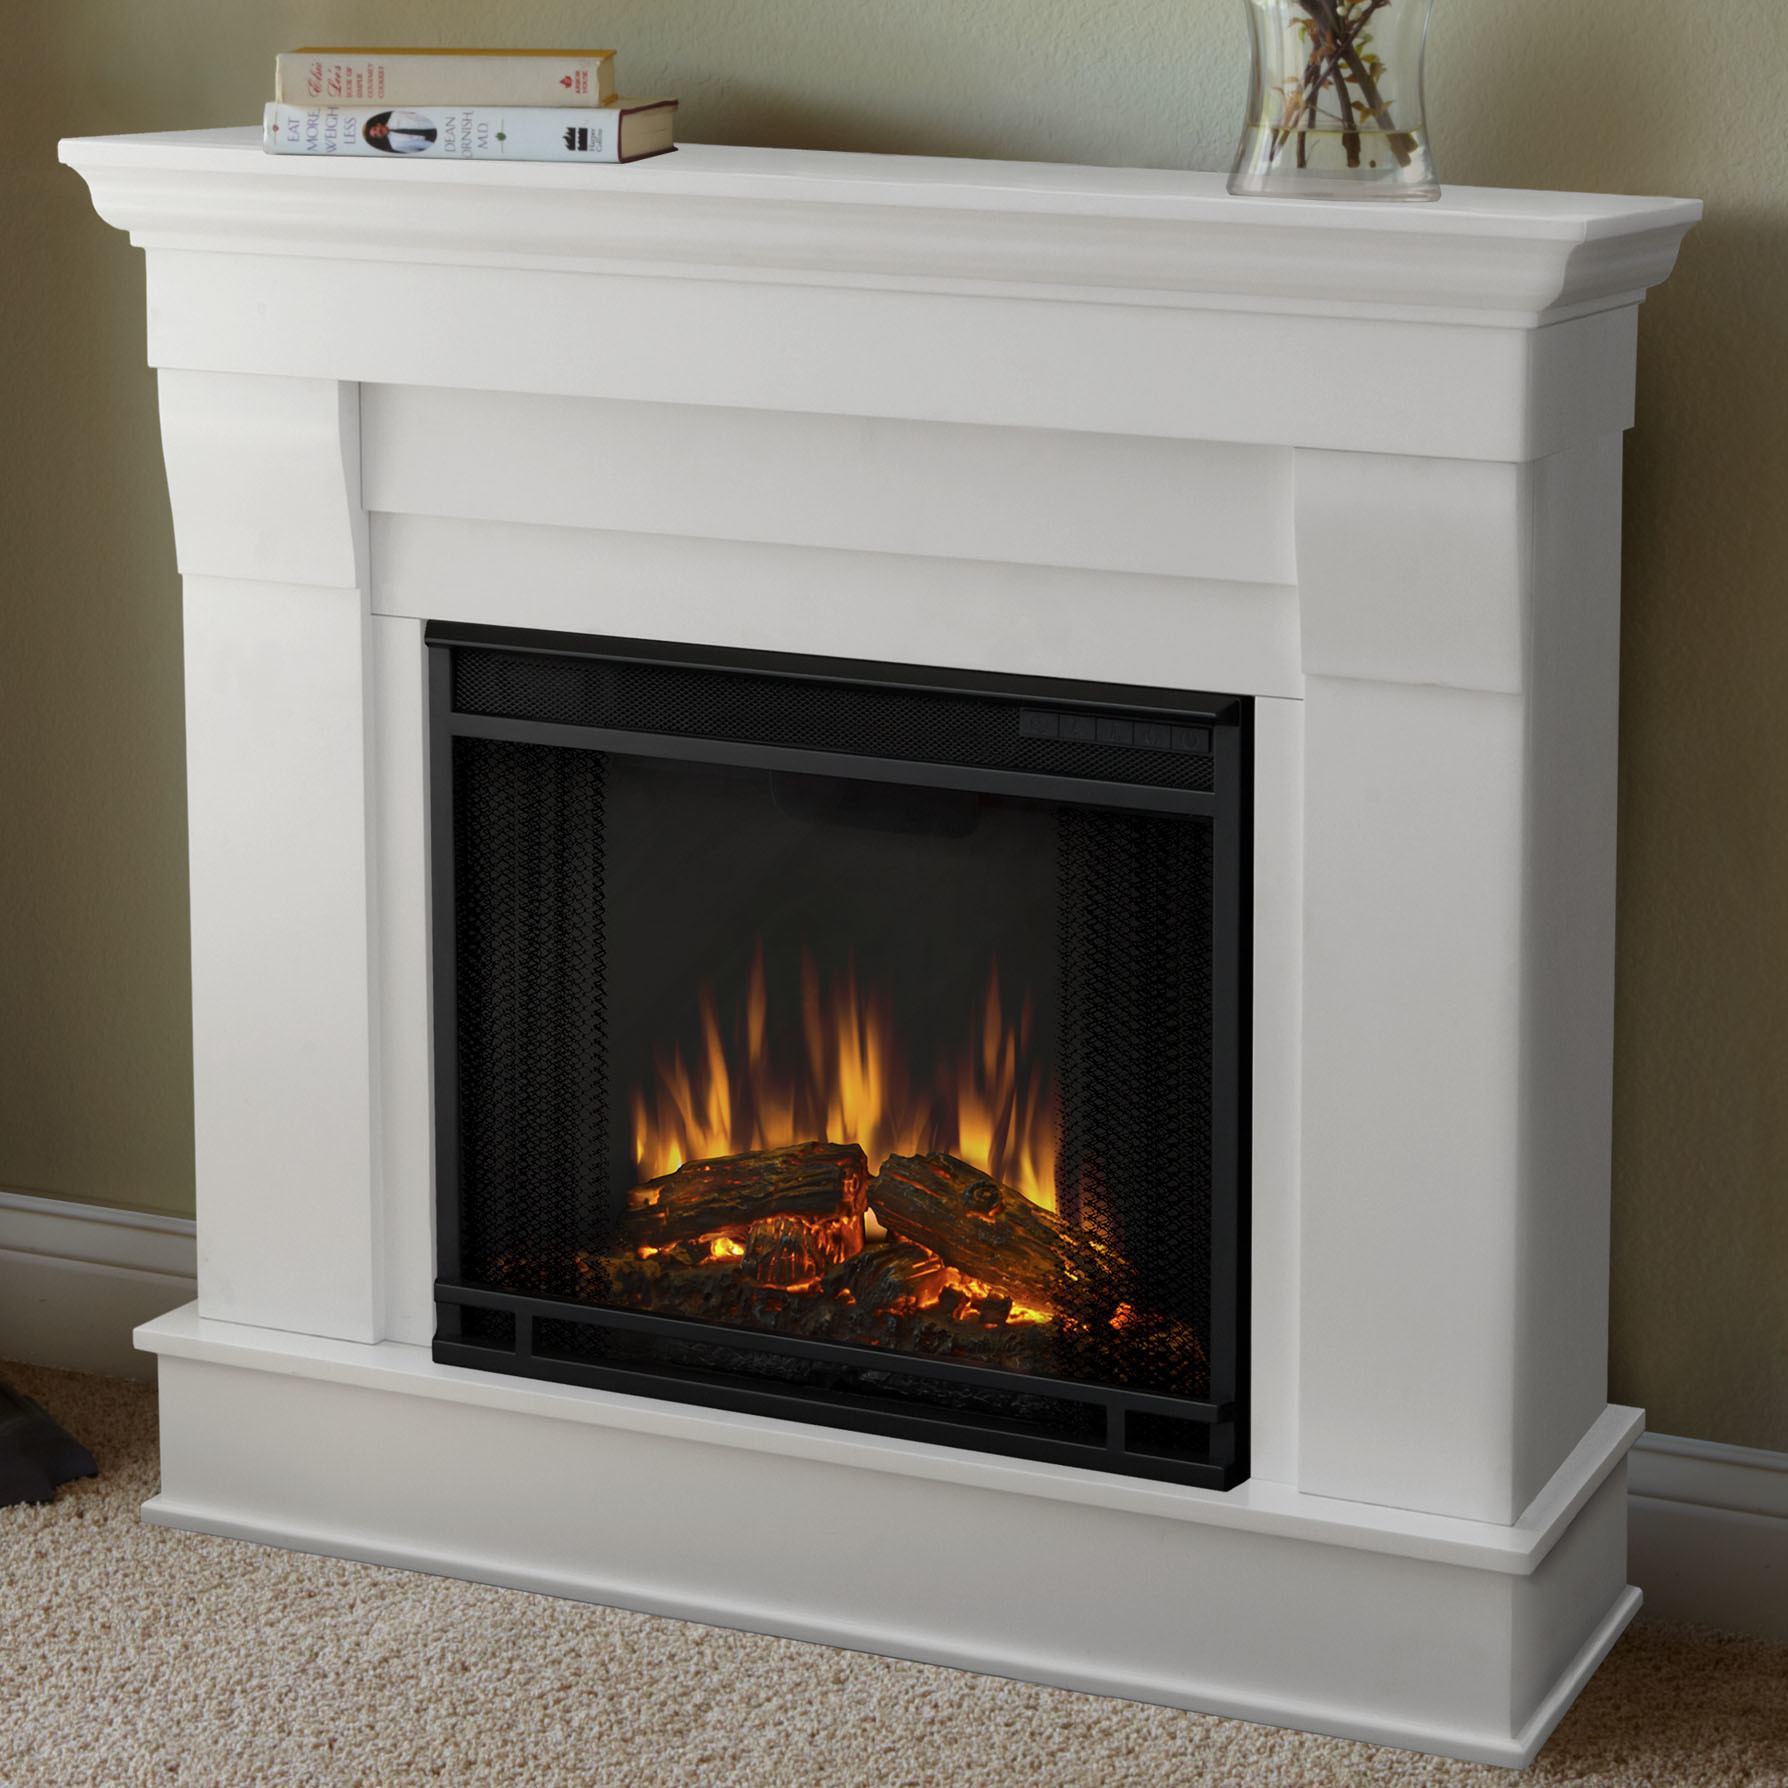 Best ideas about Real Flame Fireplace . Save or Pin Real Flame Chateau Electric Fireplace & Reviews Now.